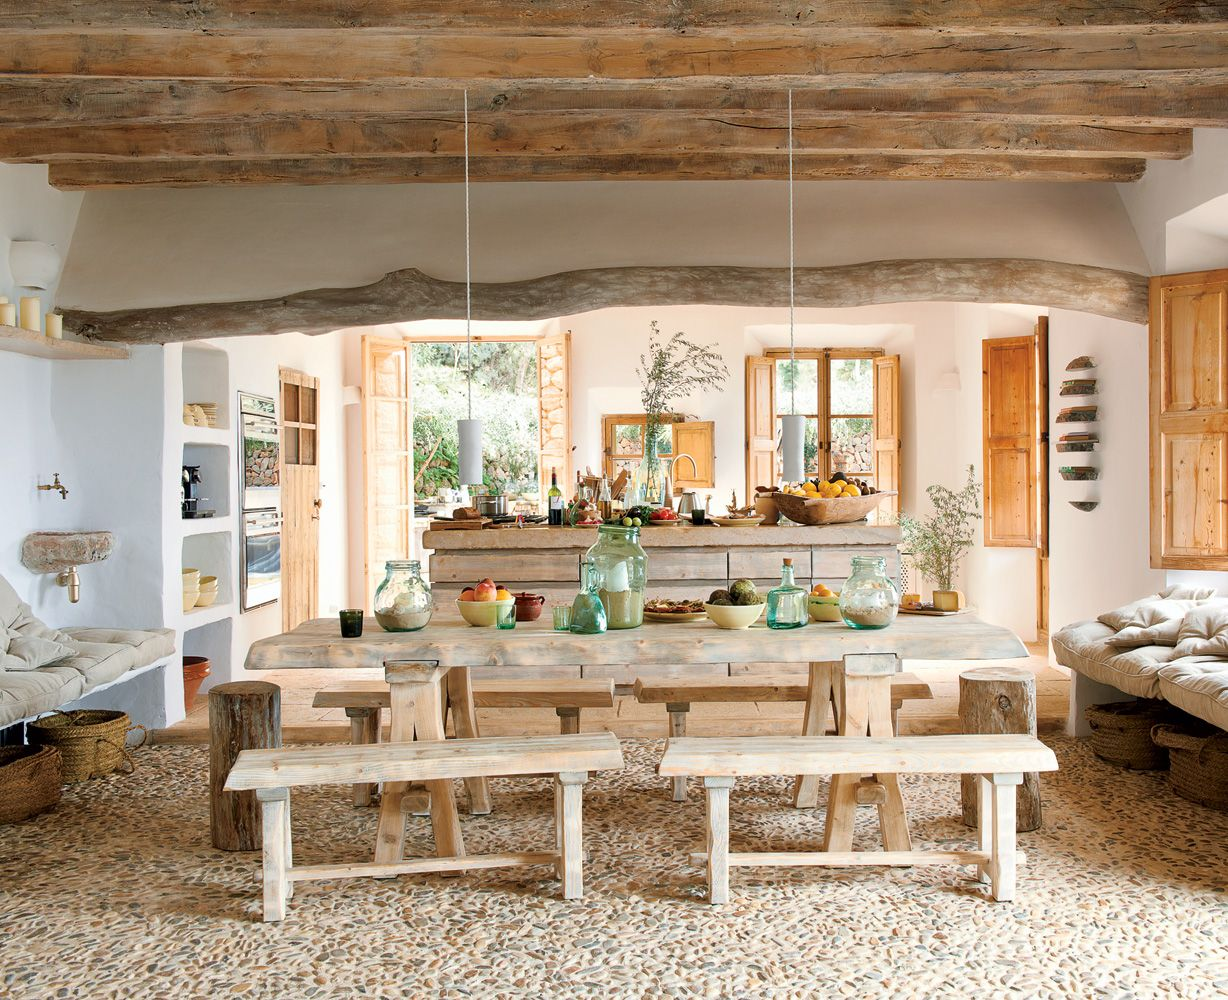 Küche Landhausstil Diy Pin Von Herbert Gruber Auf Straw Bale House Kitchens